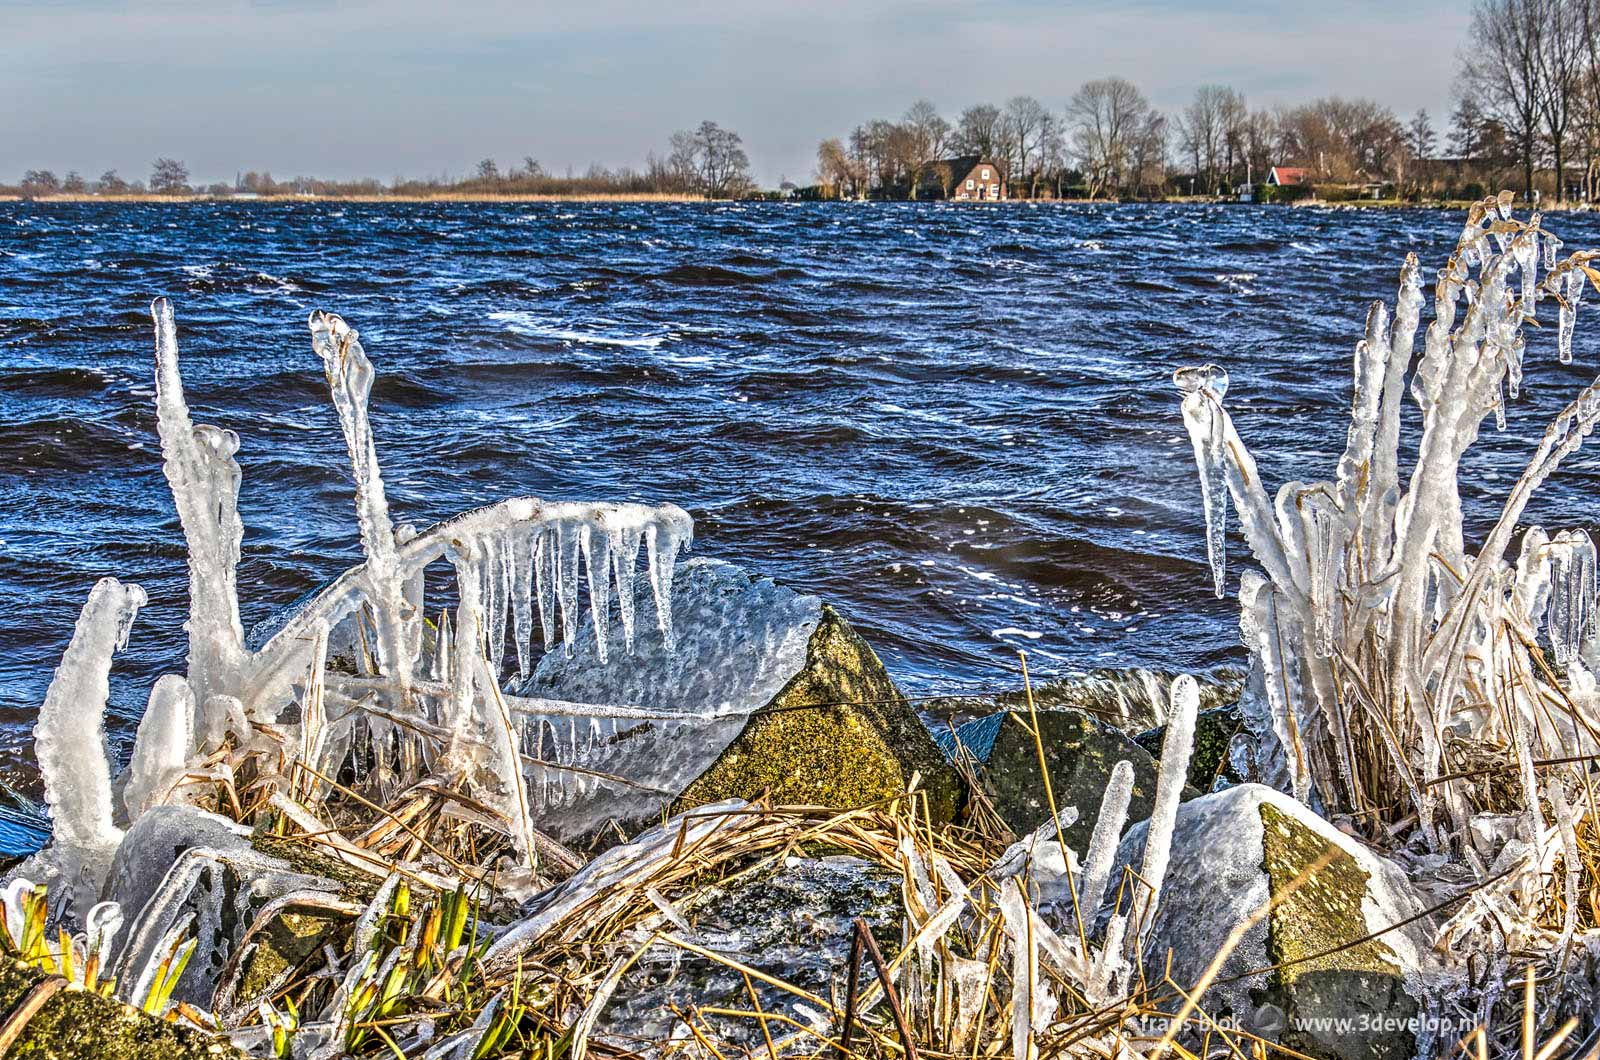 Ice sculptures crated by the strong eastern wind at the banks of Wijde Aa near Hoogmade, Holland